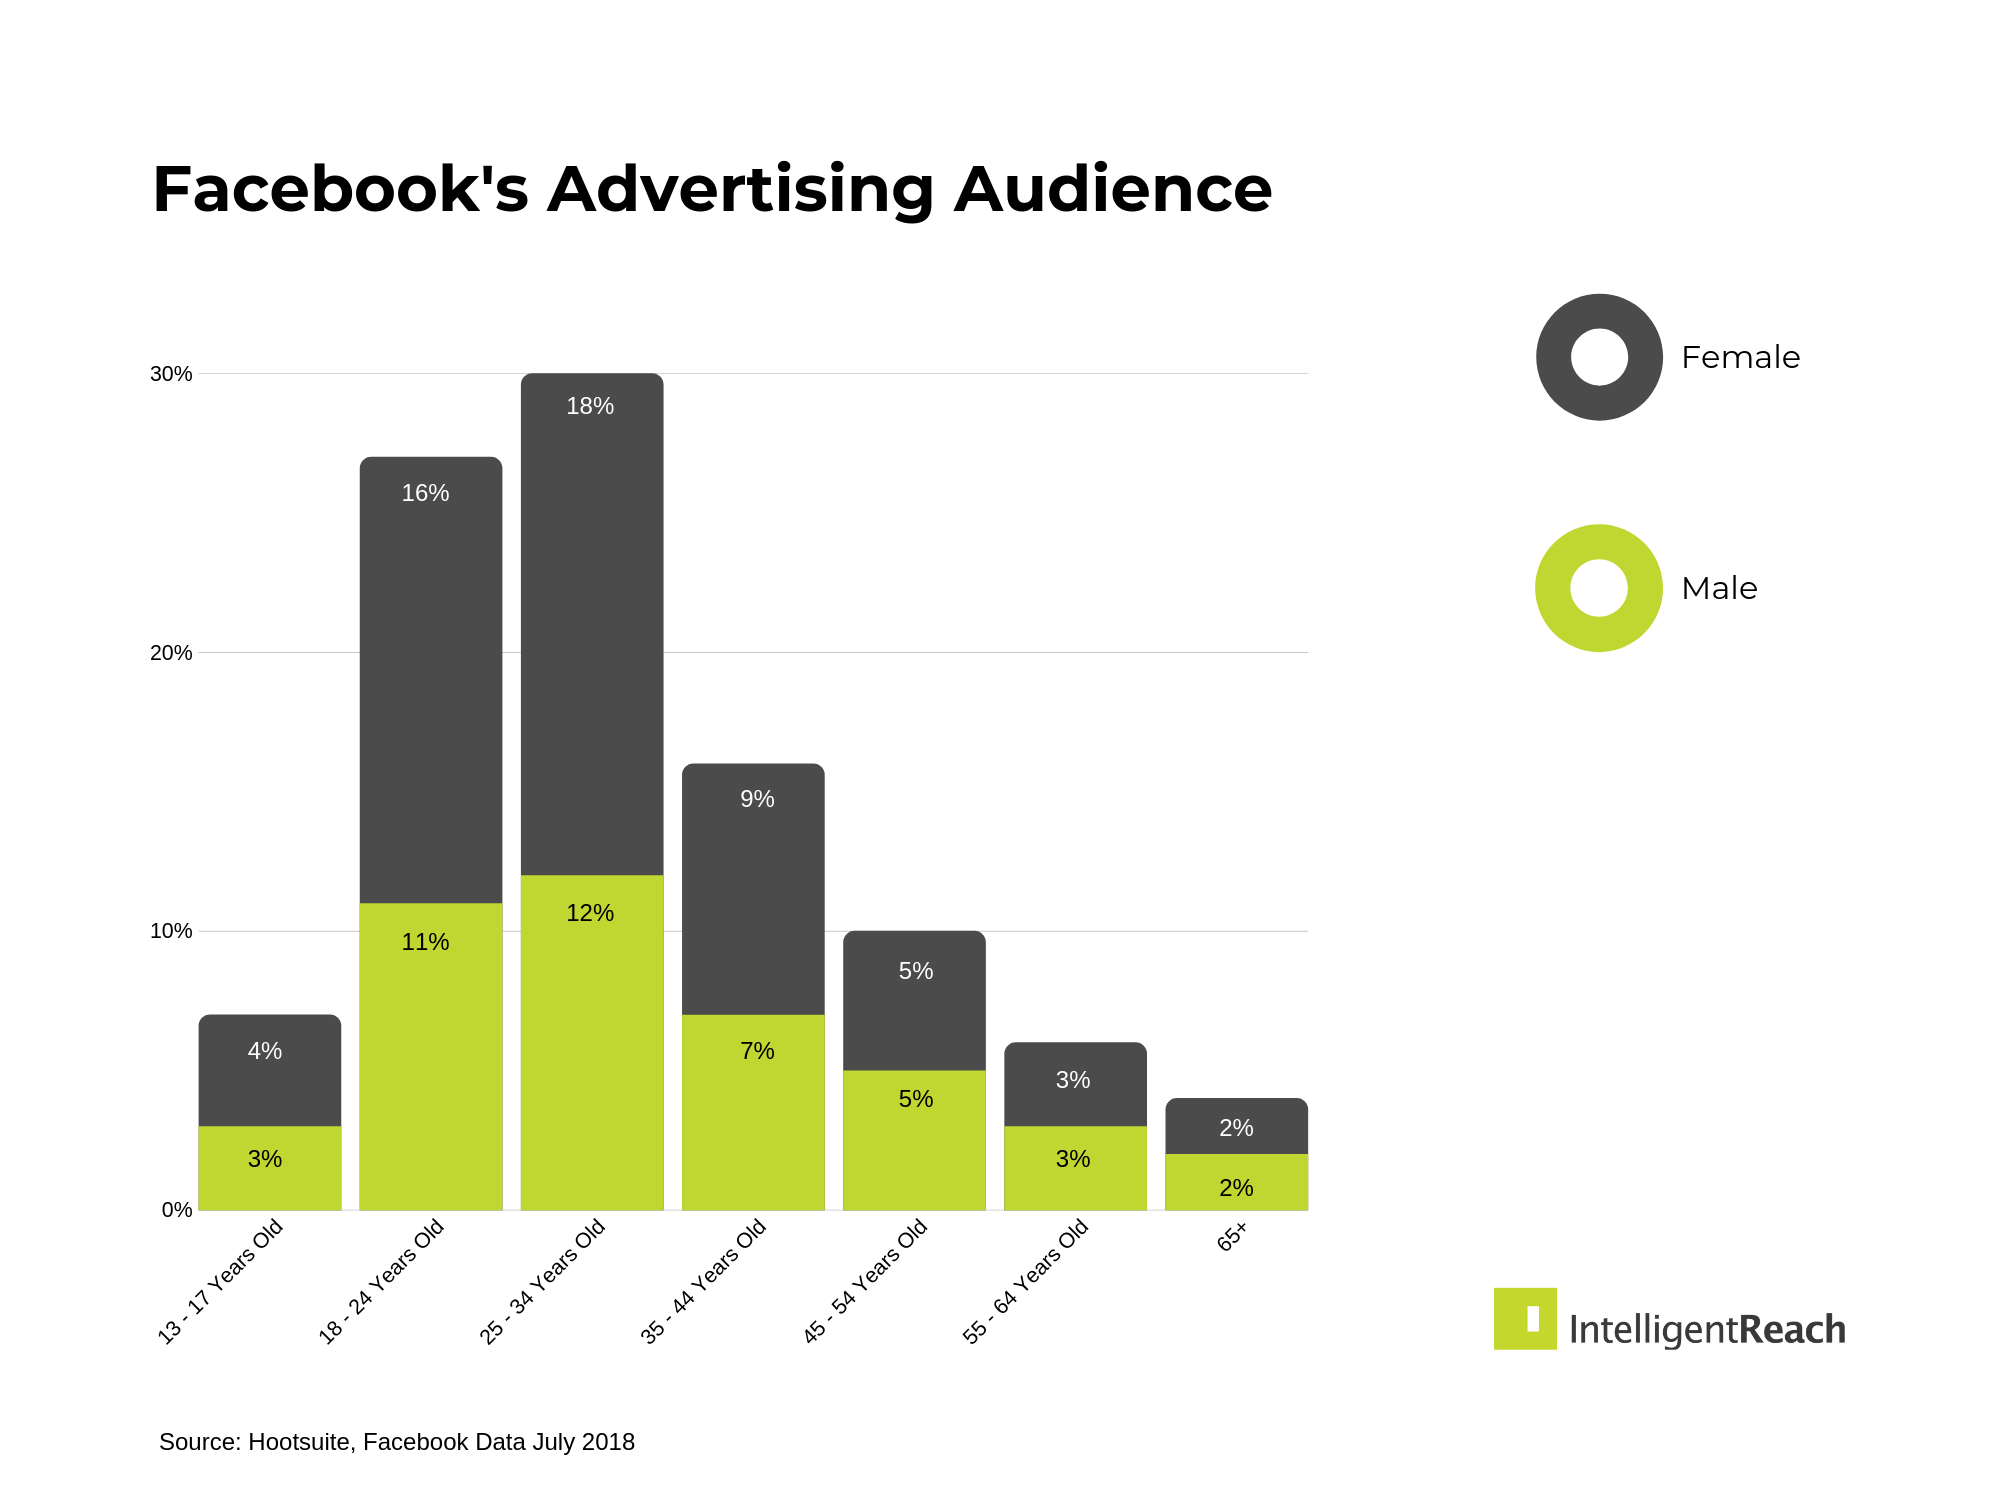 Facebook's Advertising Audience